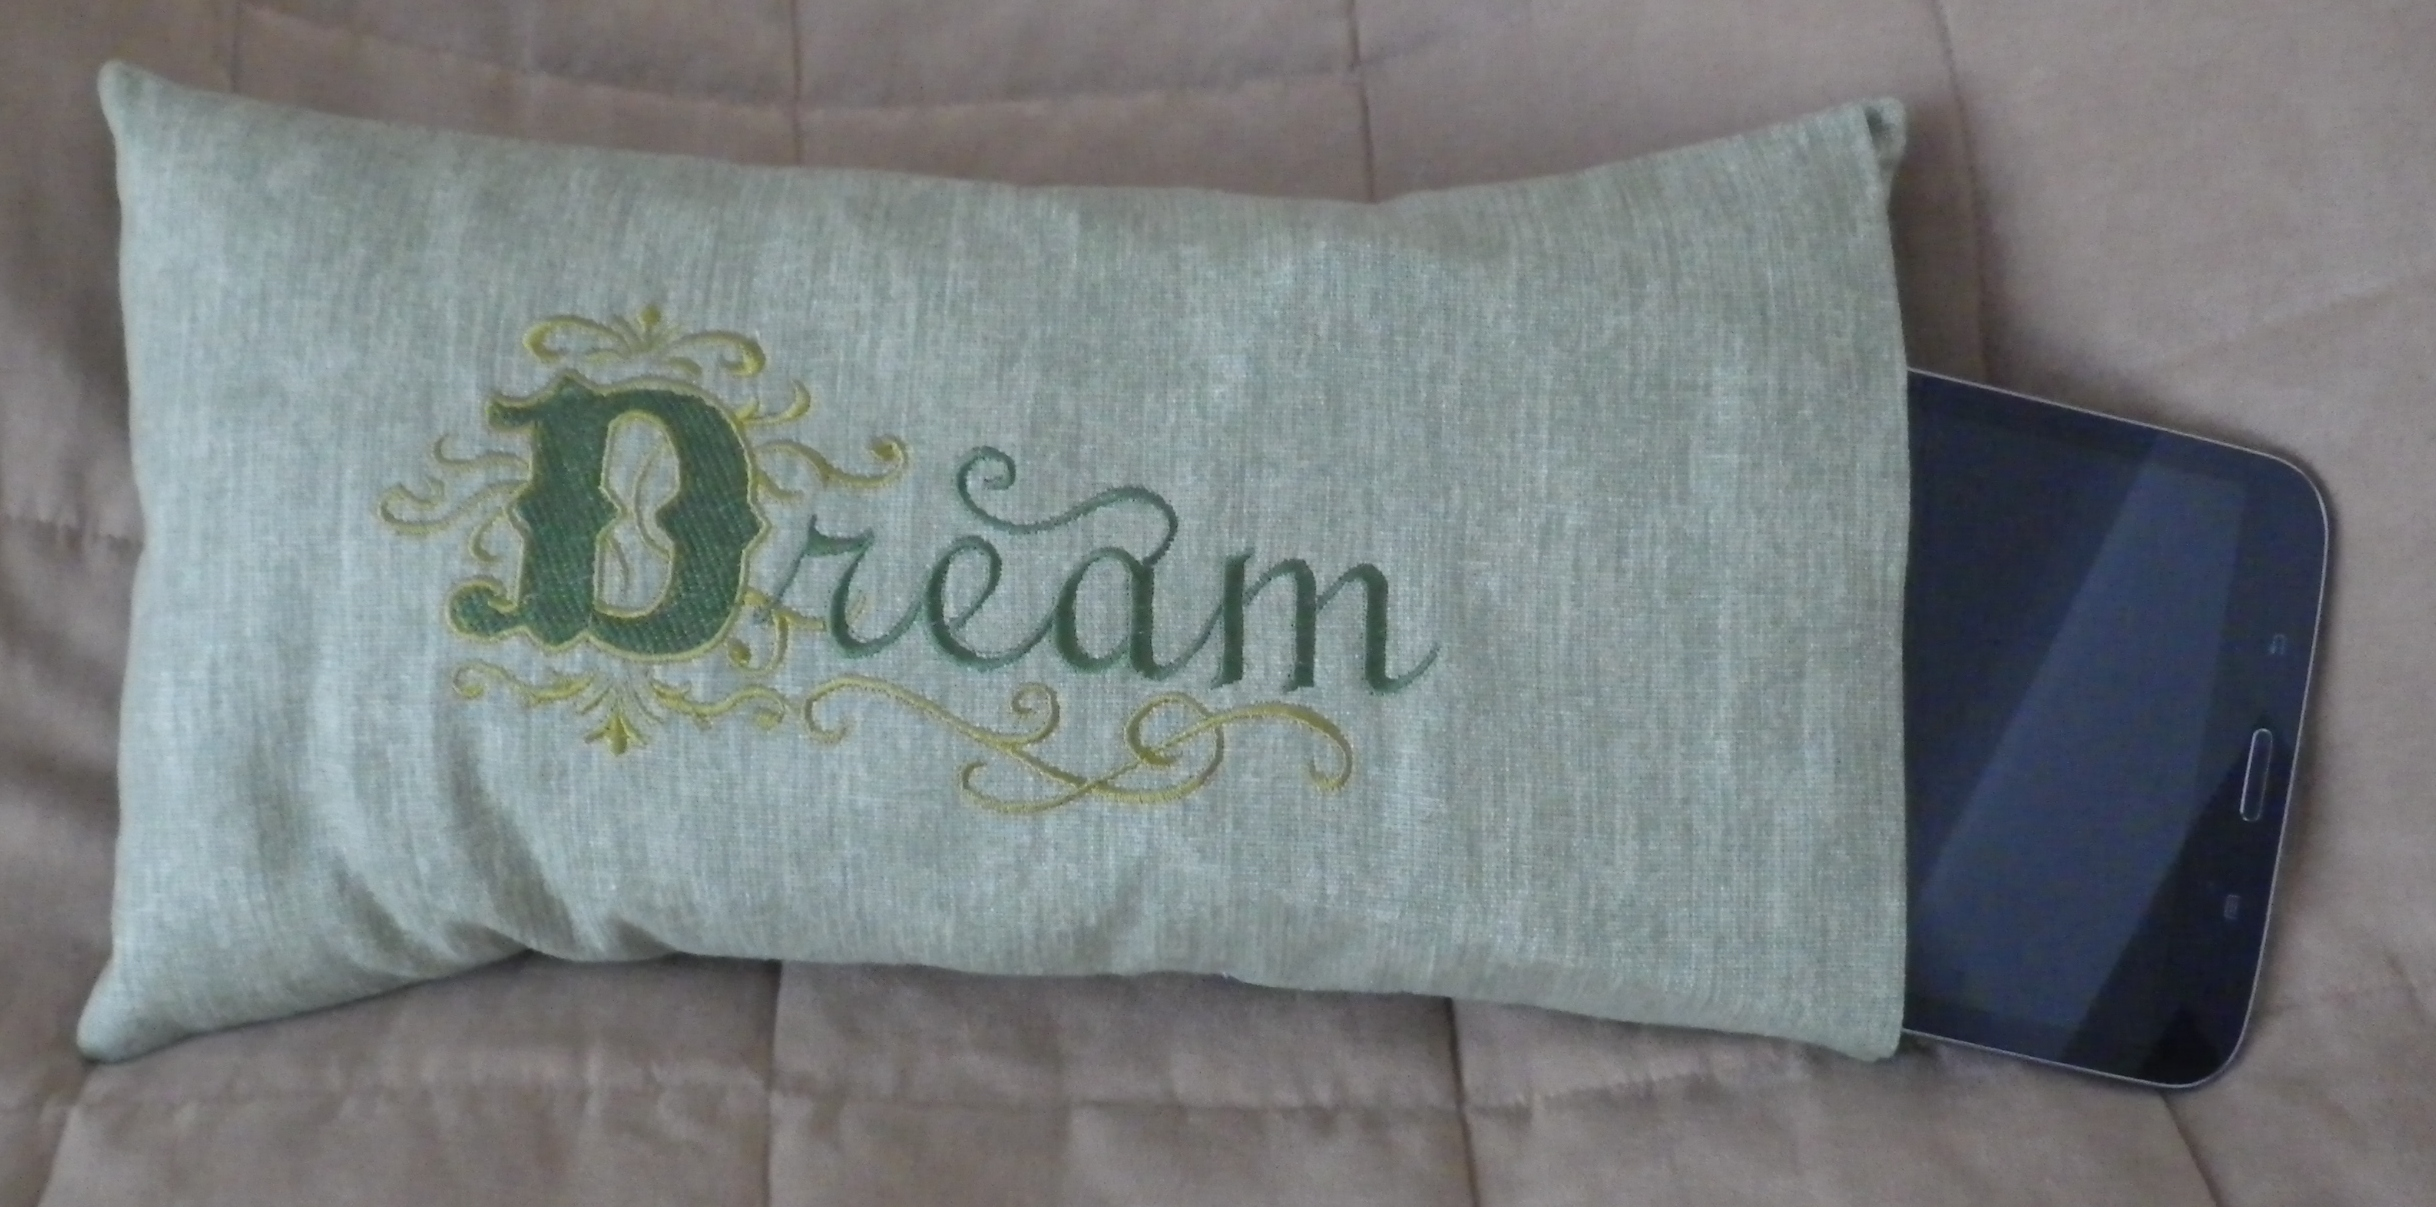 Cute Tablet Pillow : Free Embroidery Designs, Cute Embroidery Designs